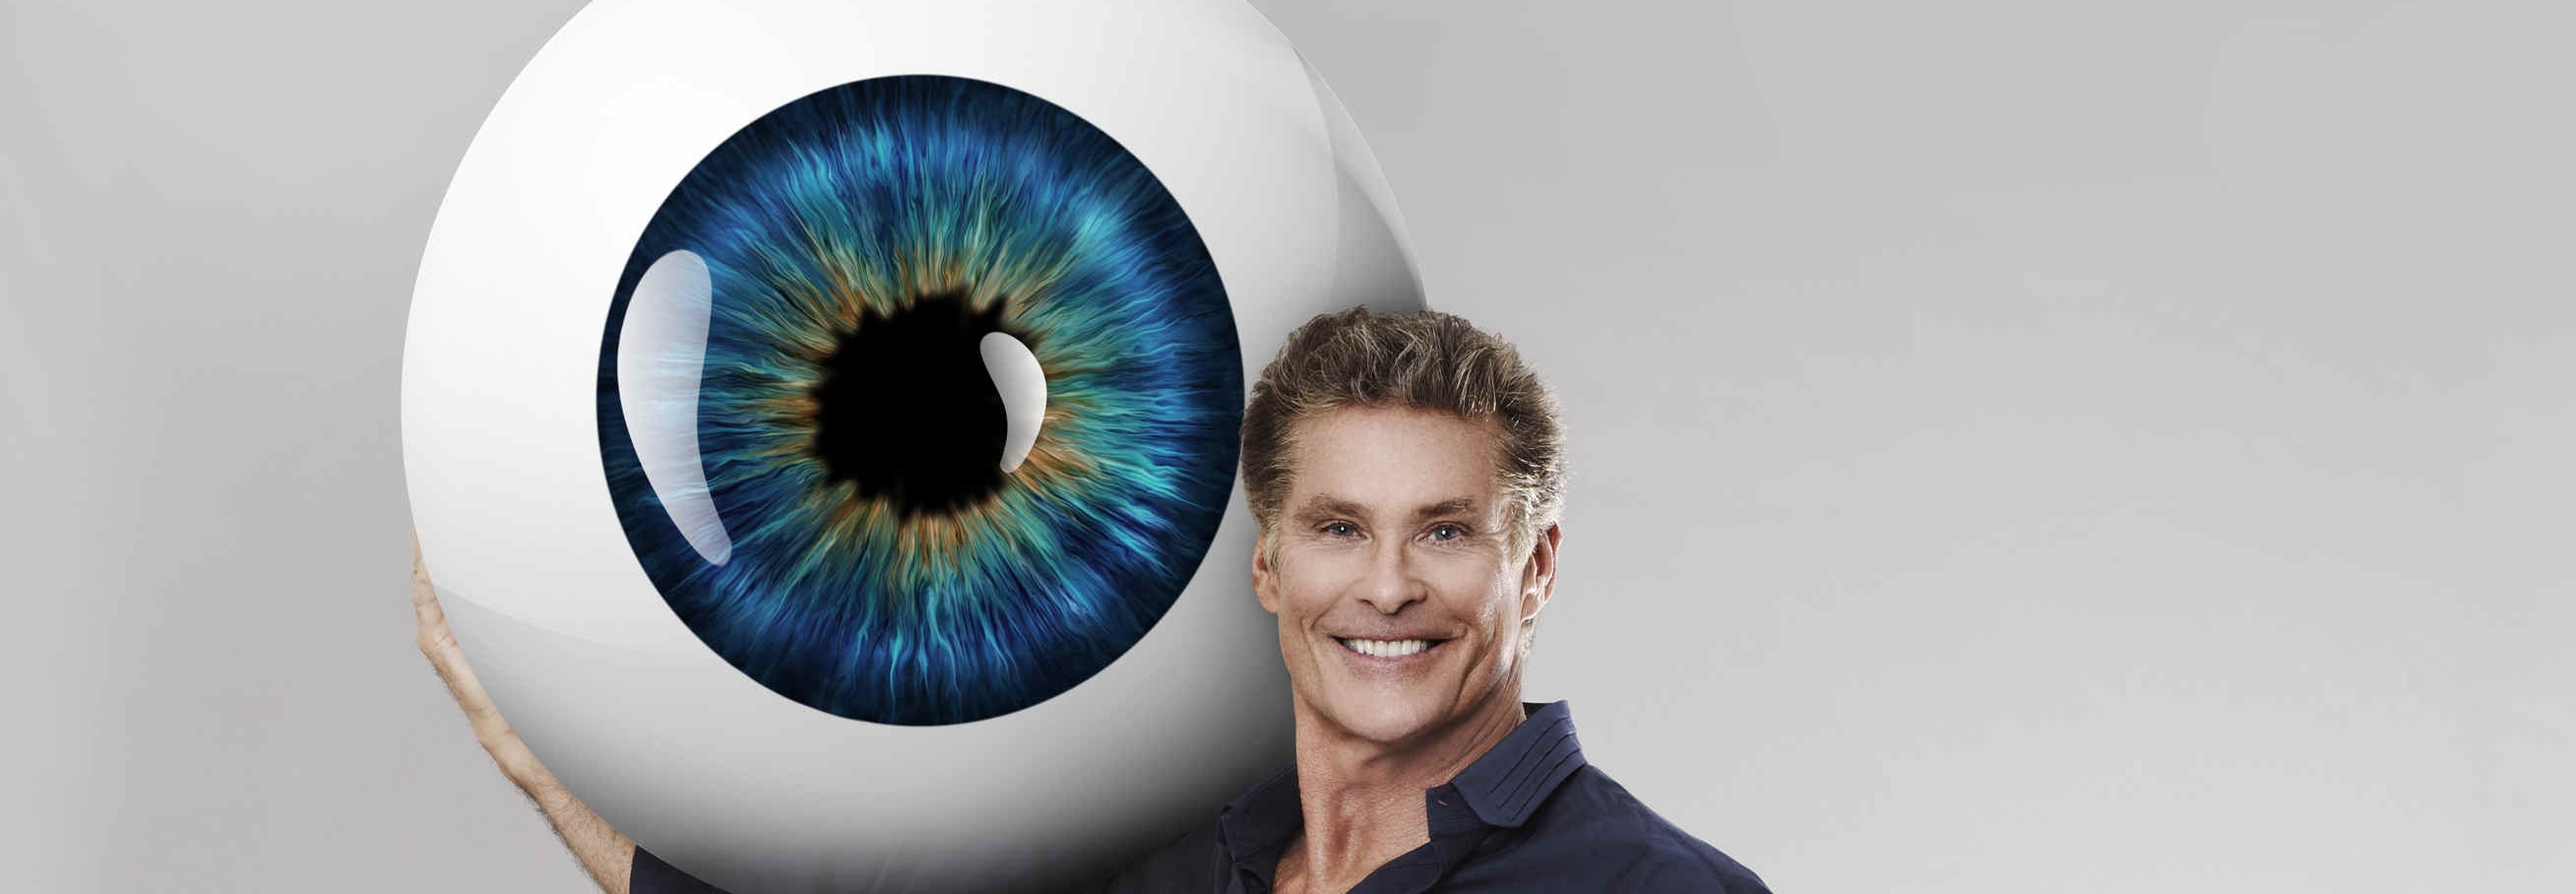 David Hasselhoff Promi Big Brother 2013 Auge